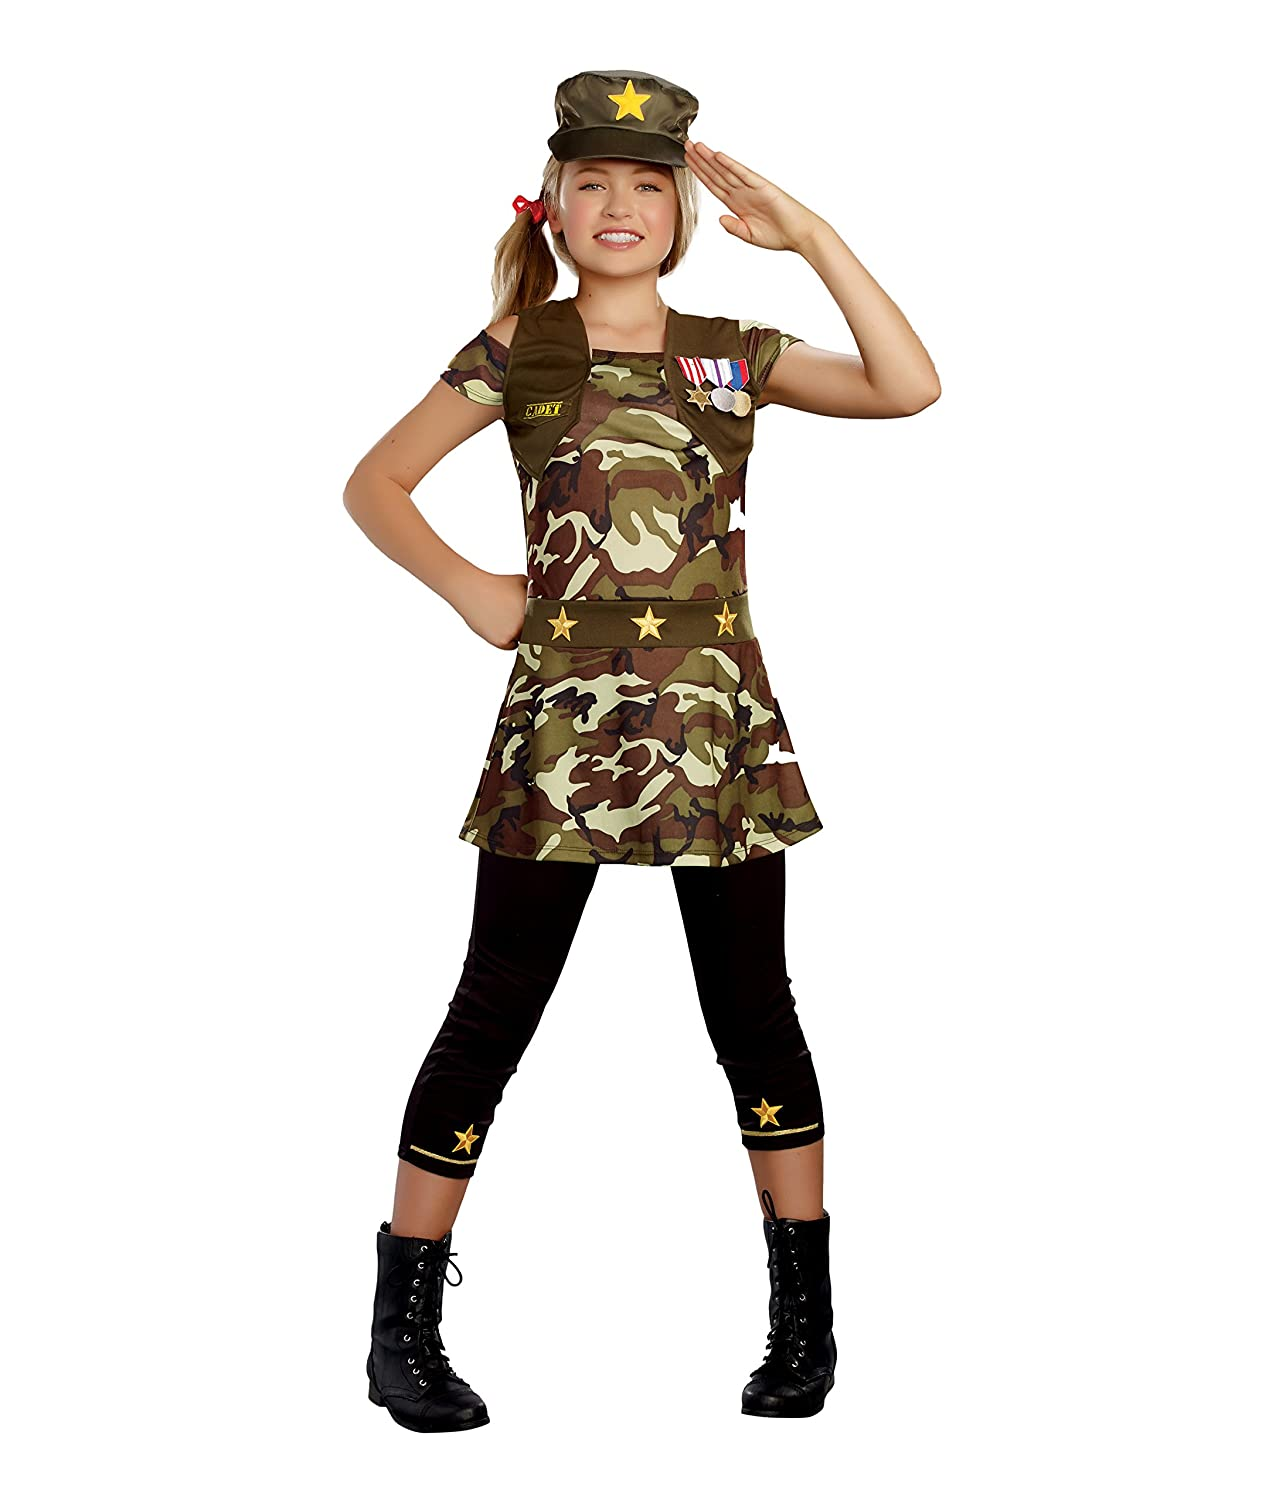 SugarSugar Girls Cadet Cutie Costume, One Color, X-Large, One Color, X-Large by Sugar